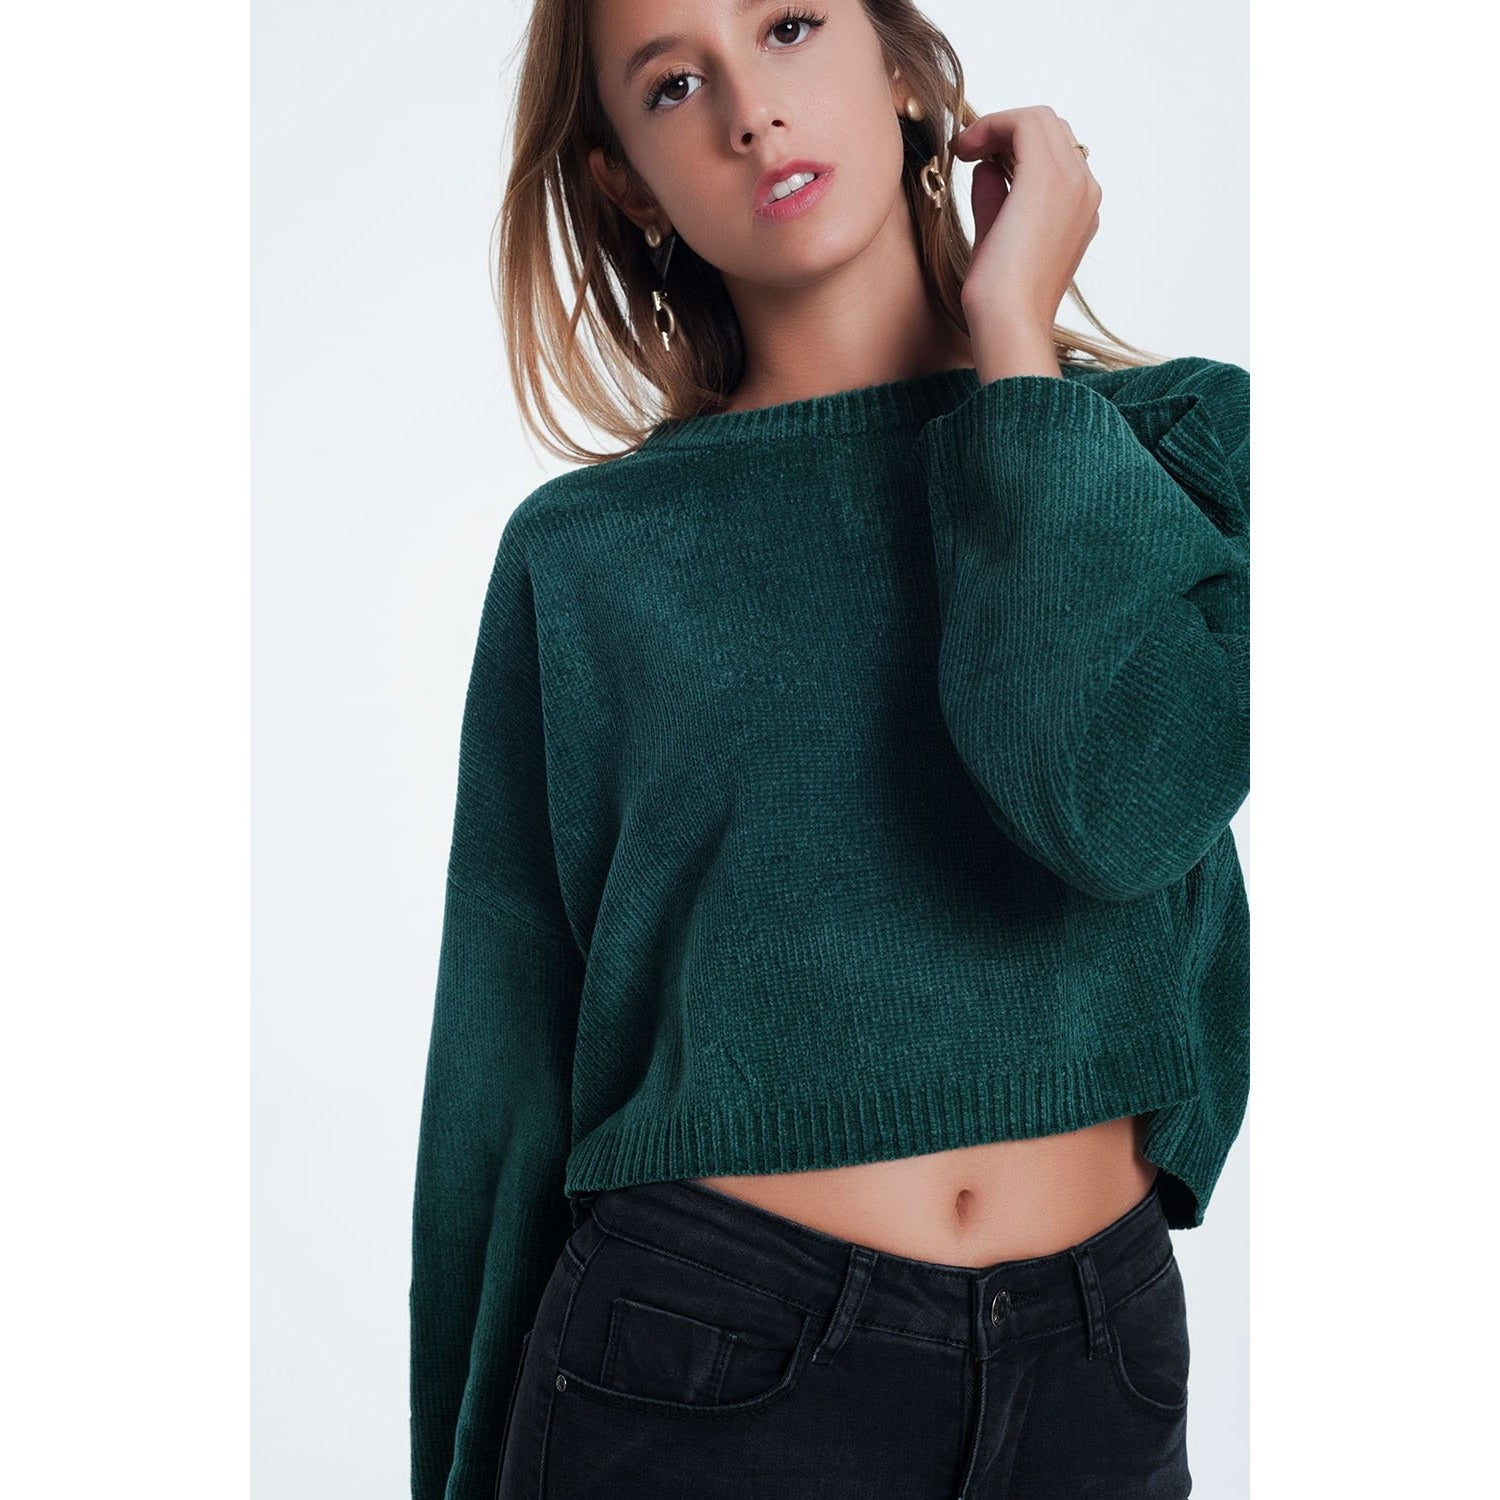 Flare Sleeve Sweater in Green - Miraposa